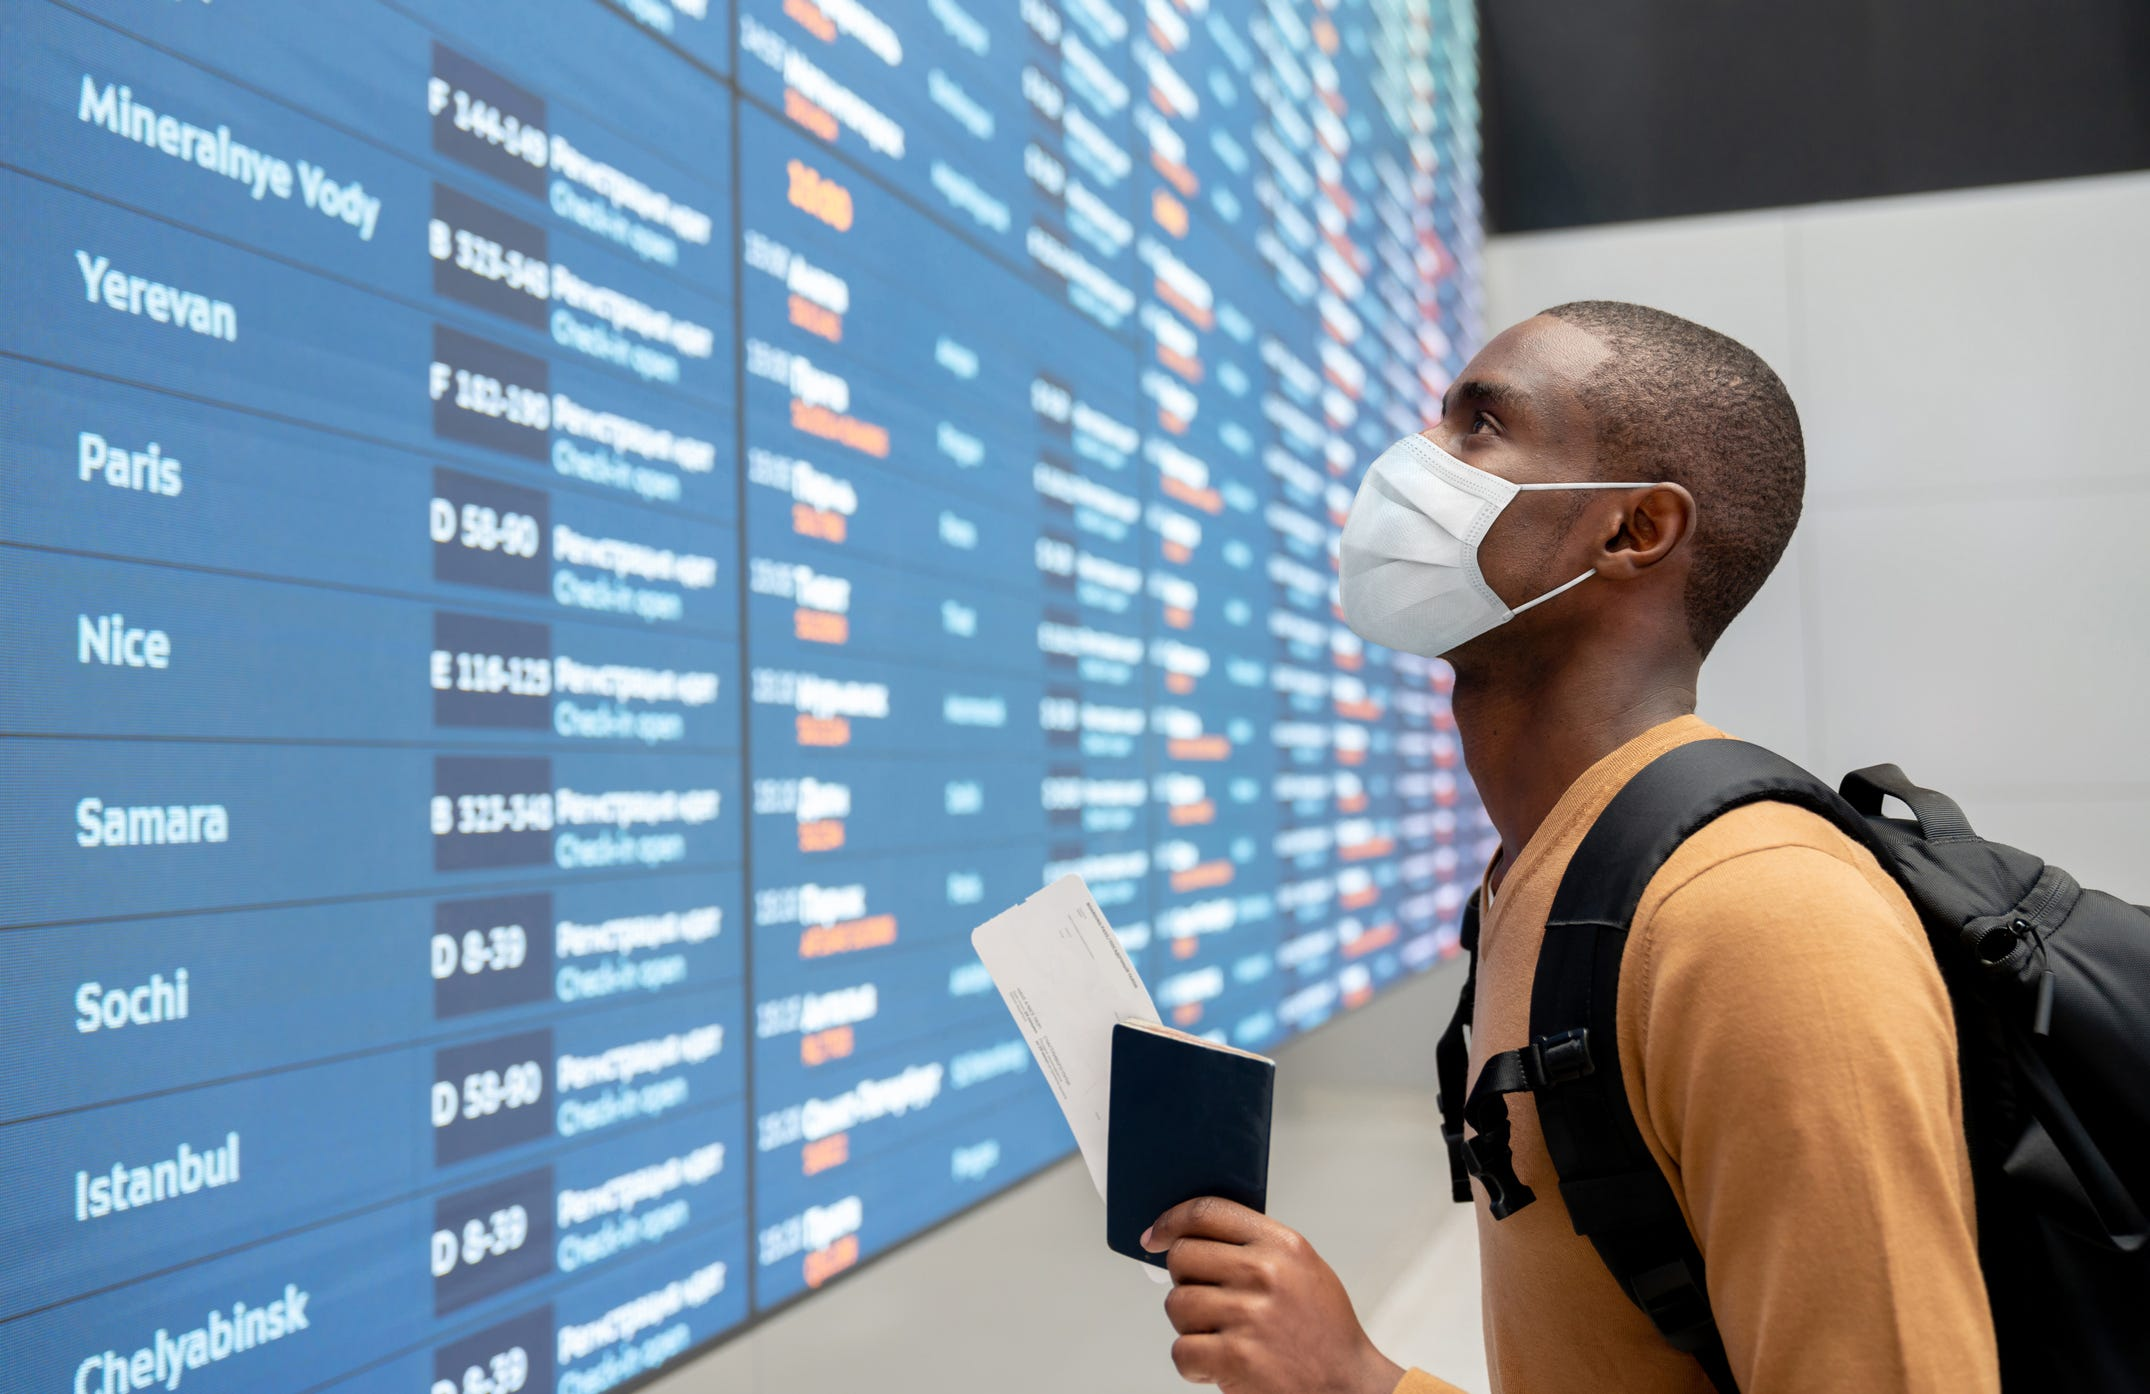 Ask the Captain: Does a flight's arrival time mean when it lands or gets to the terminal?